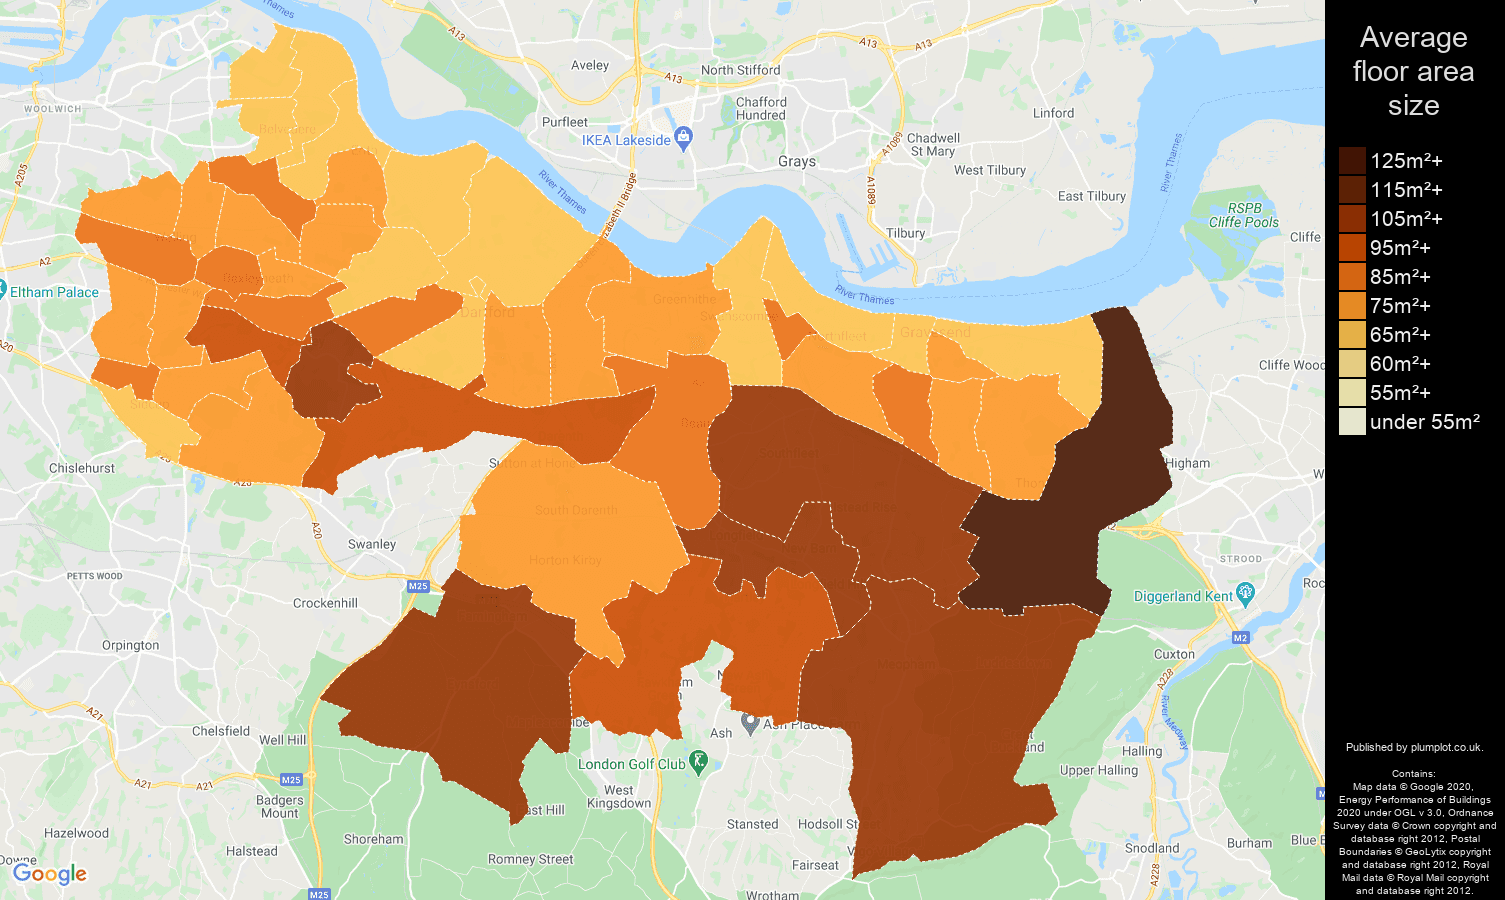 Dartford map of average floor area size of properties